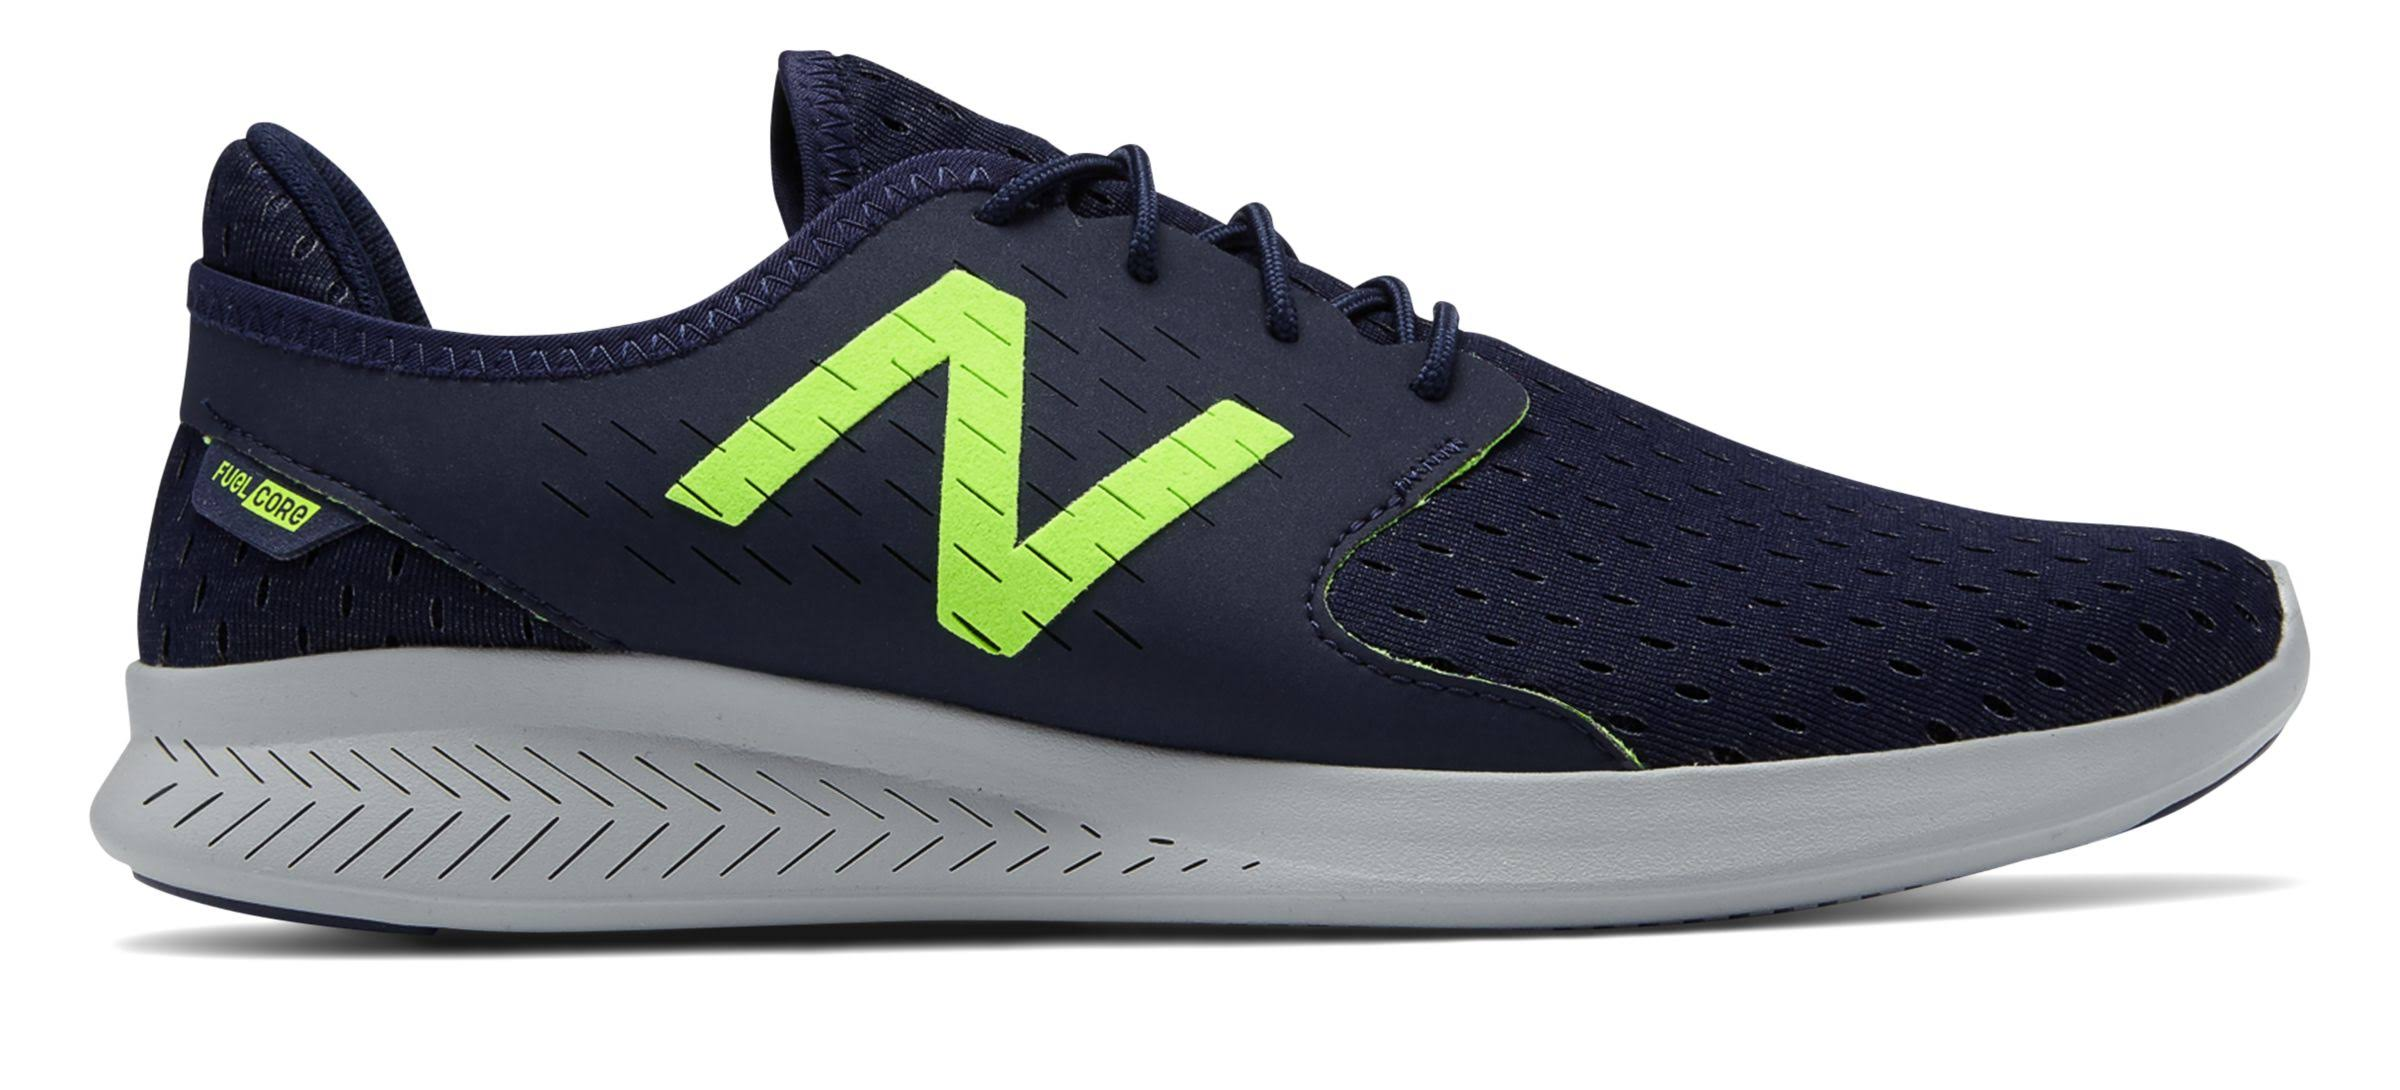 9 With 4e Mcoaslb3 Green New Fuelcore 5 Shoes V3 Men's Balance Coast Navy q14xBTwF